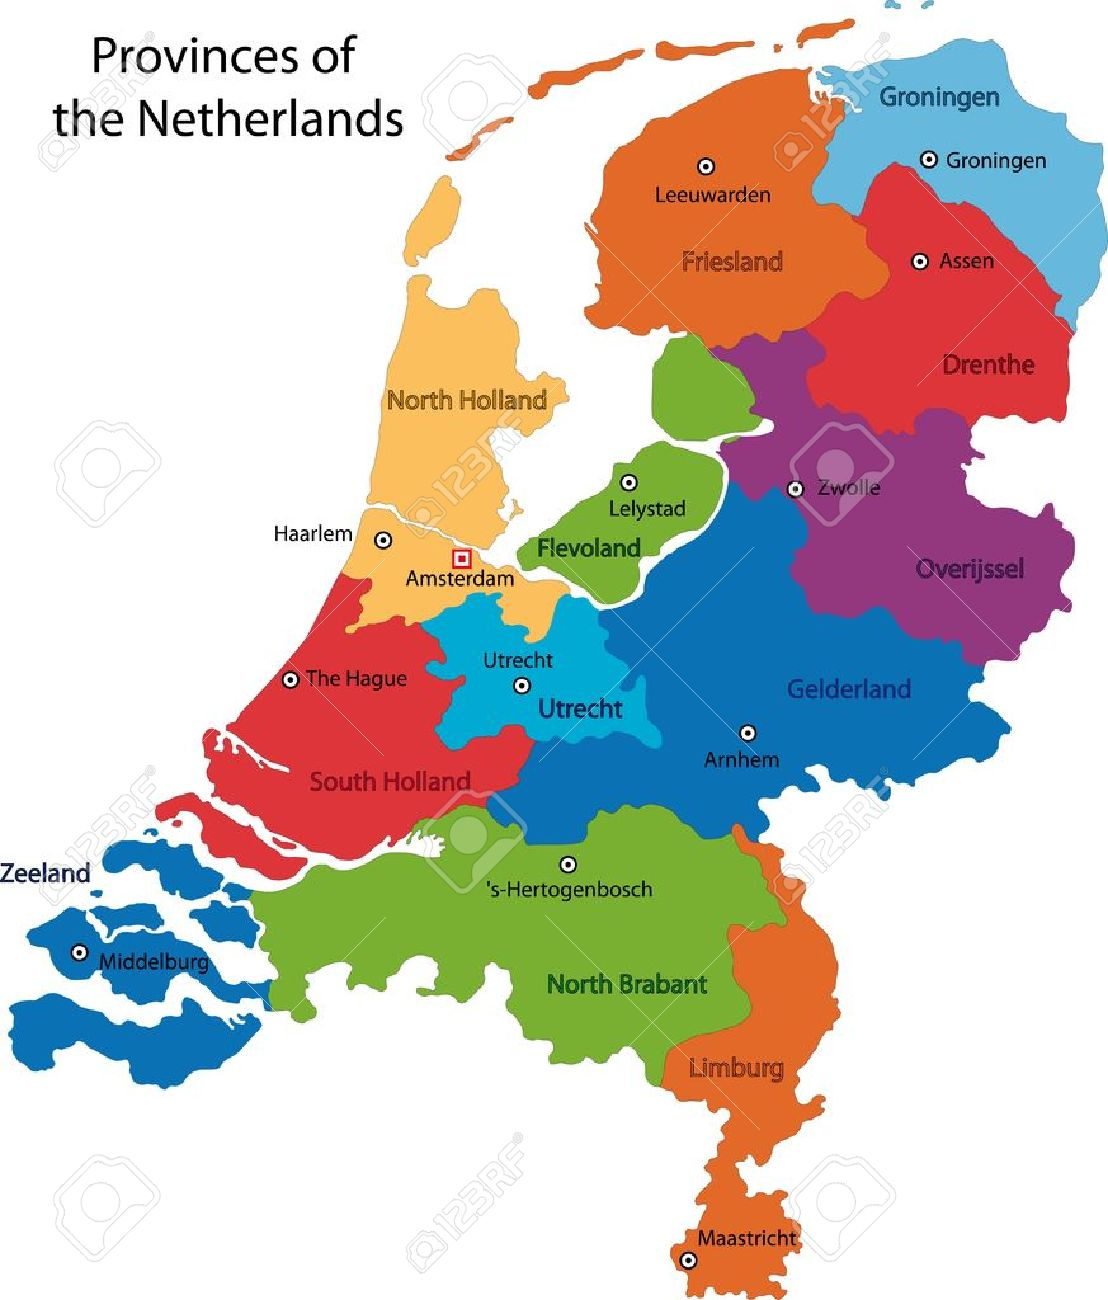 Colorful Netherlands Map With Regions And Main Cities Royalty Free - Netherlands map